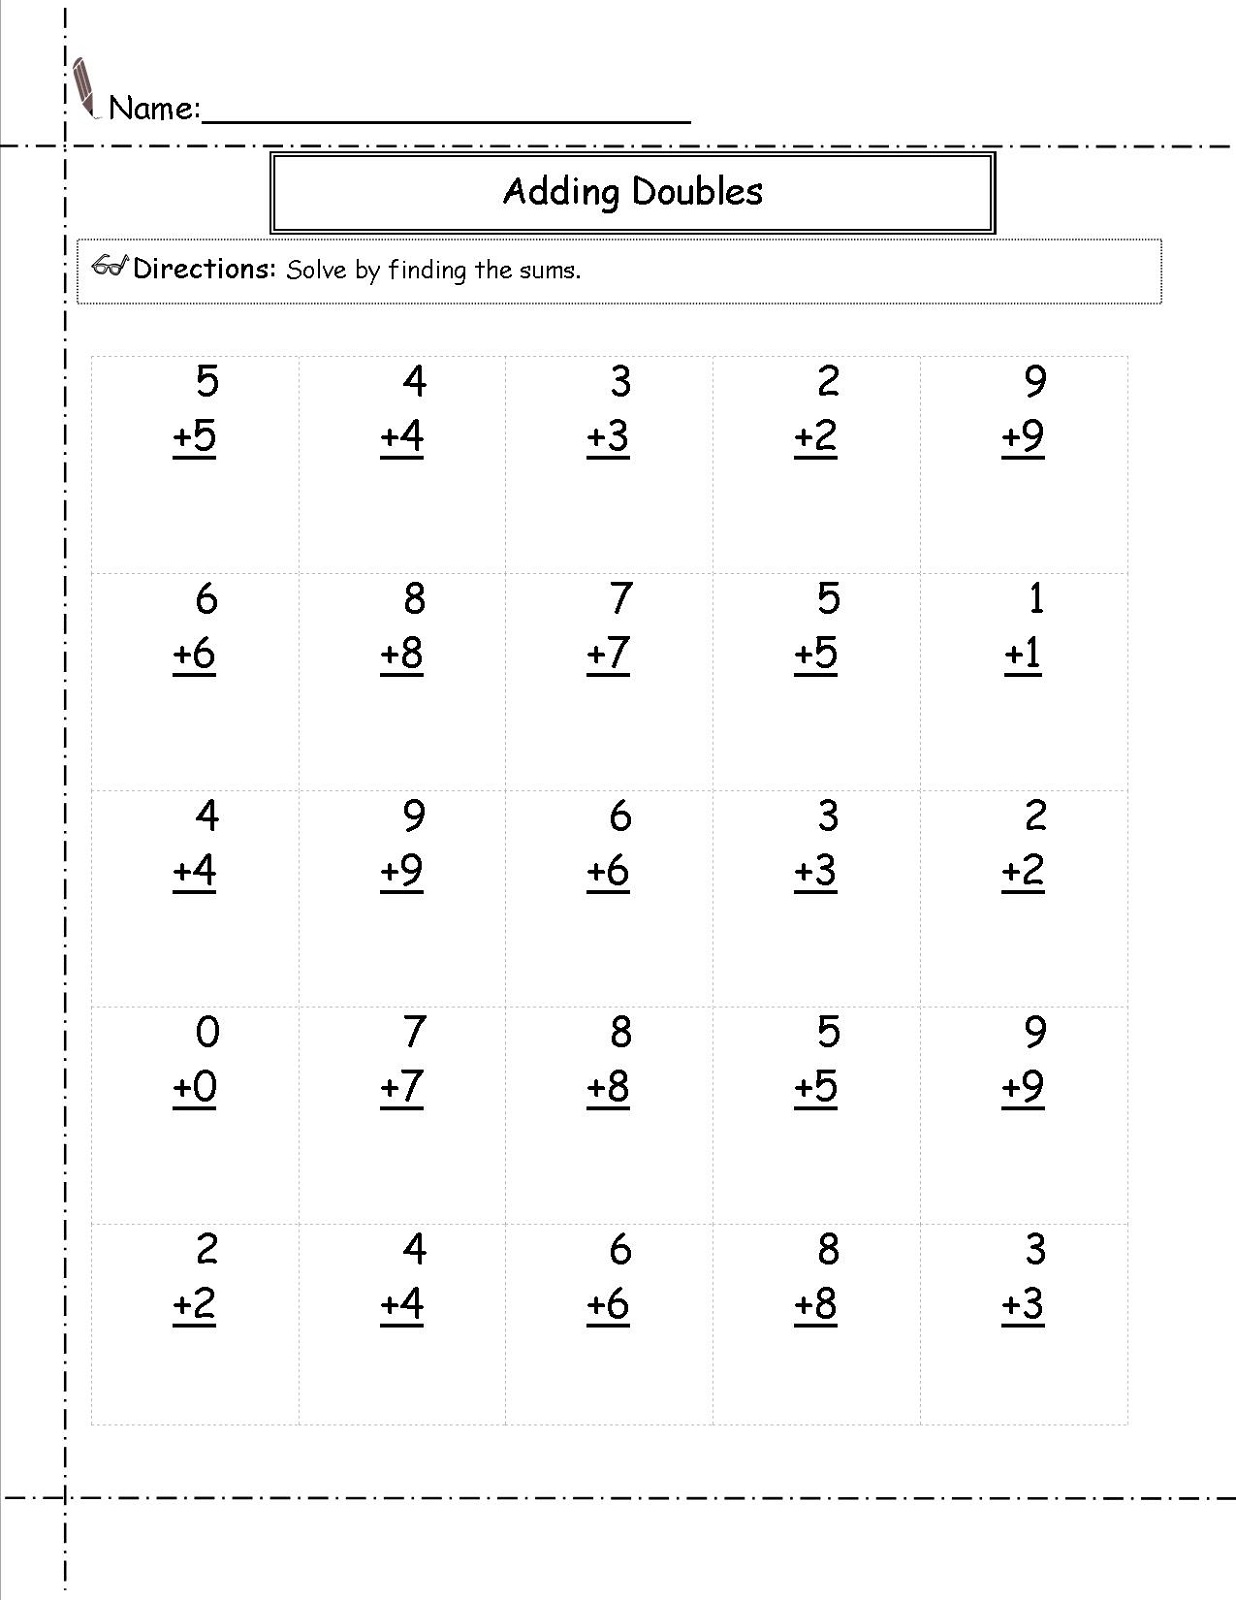 Addition worksheets adding doubles